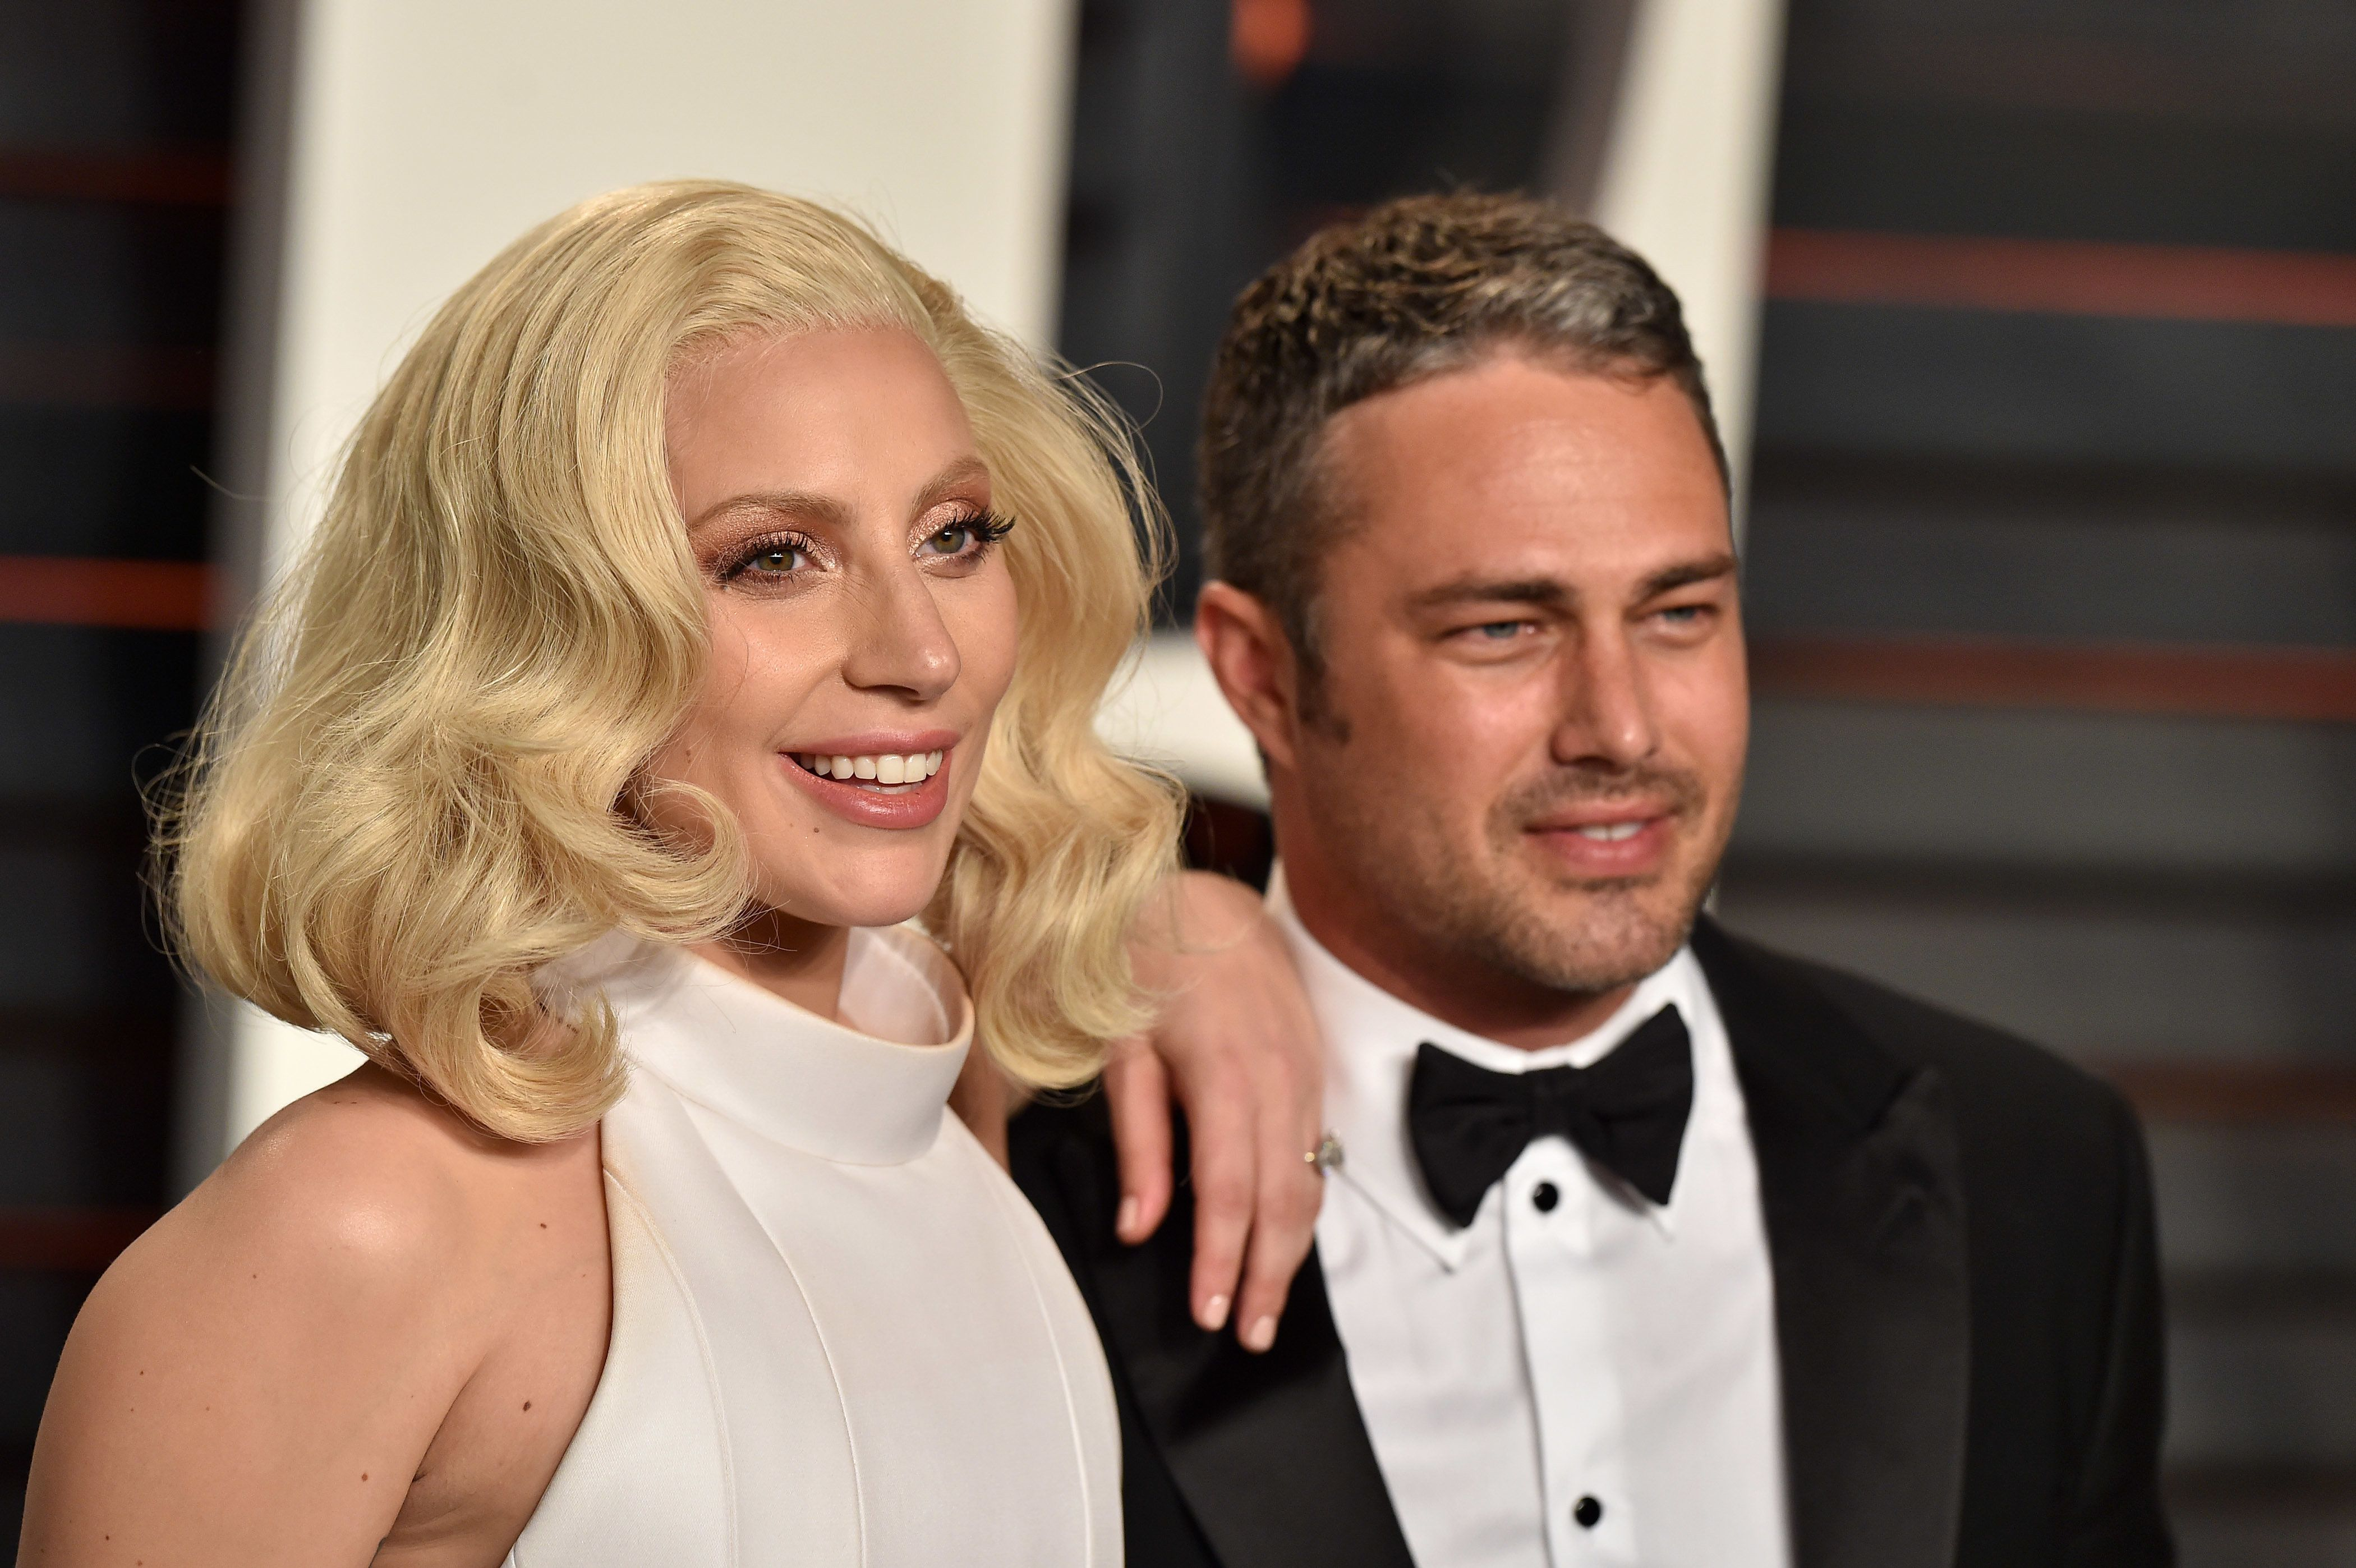 Lady Gaga Confirmed She's Engaged to Christian Carino